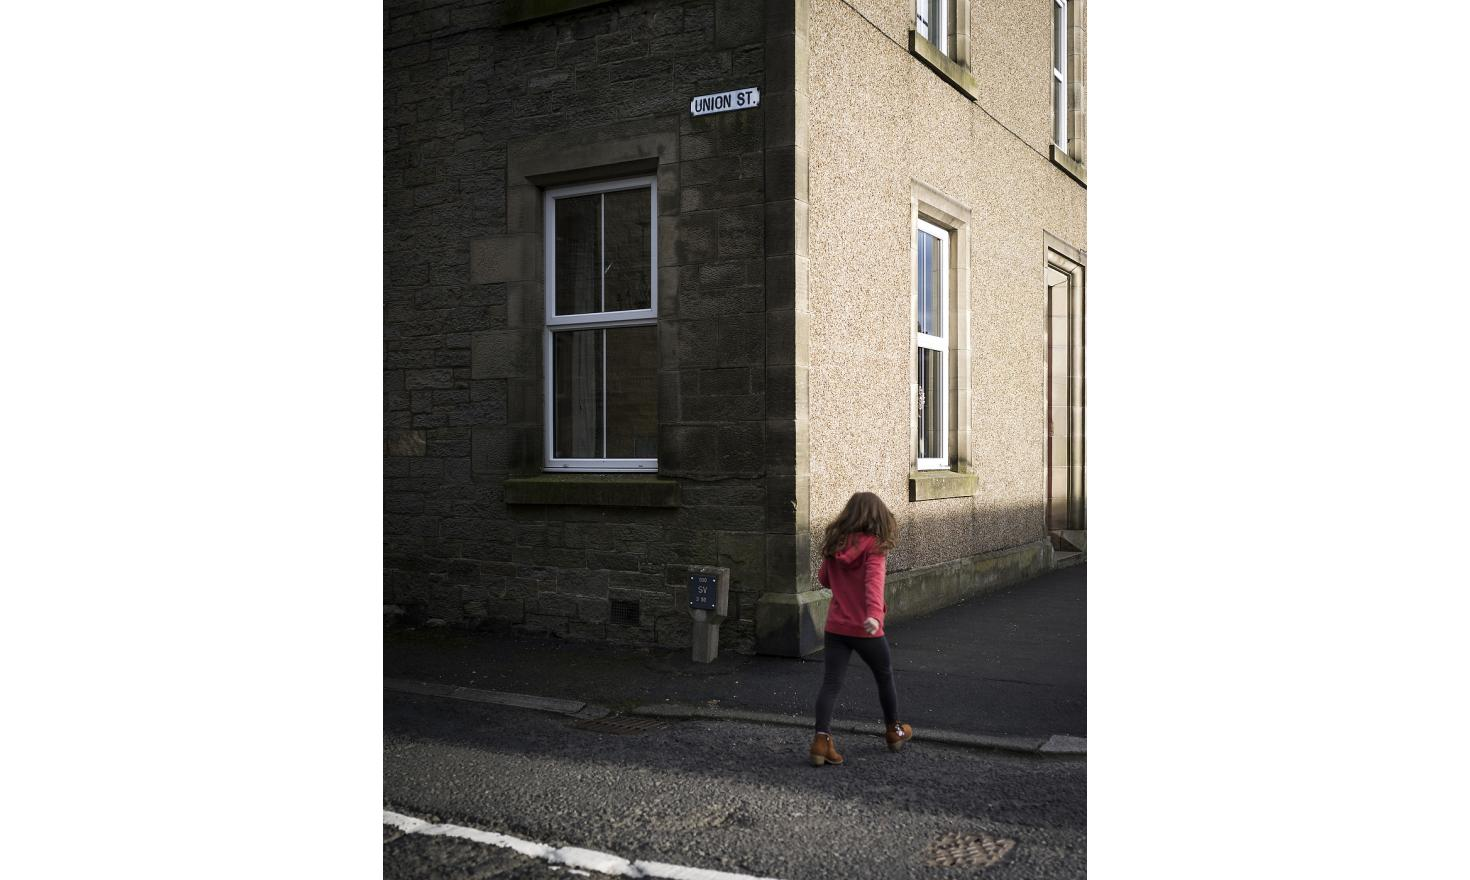 A girl walks past Union Street in the Scottish village of Newcastleton. The Scottish Borders region voted 58,5% for remaining in the EU